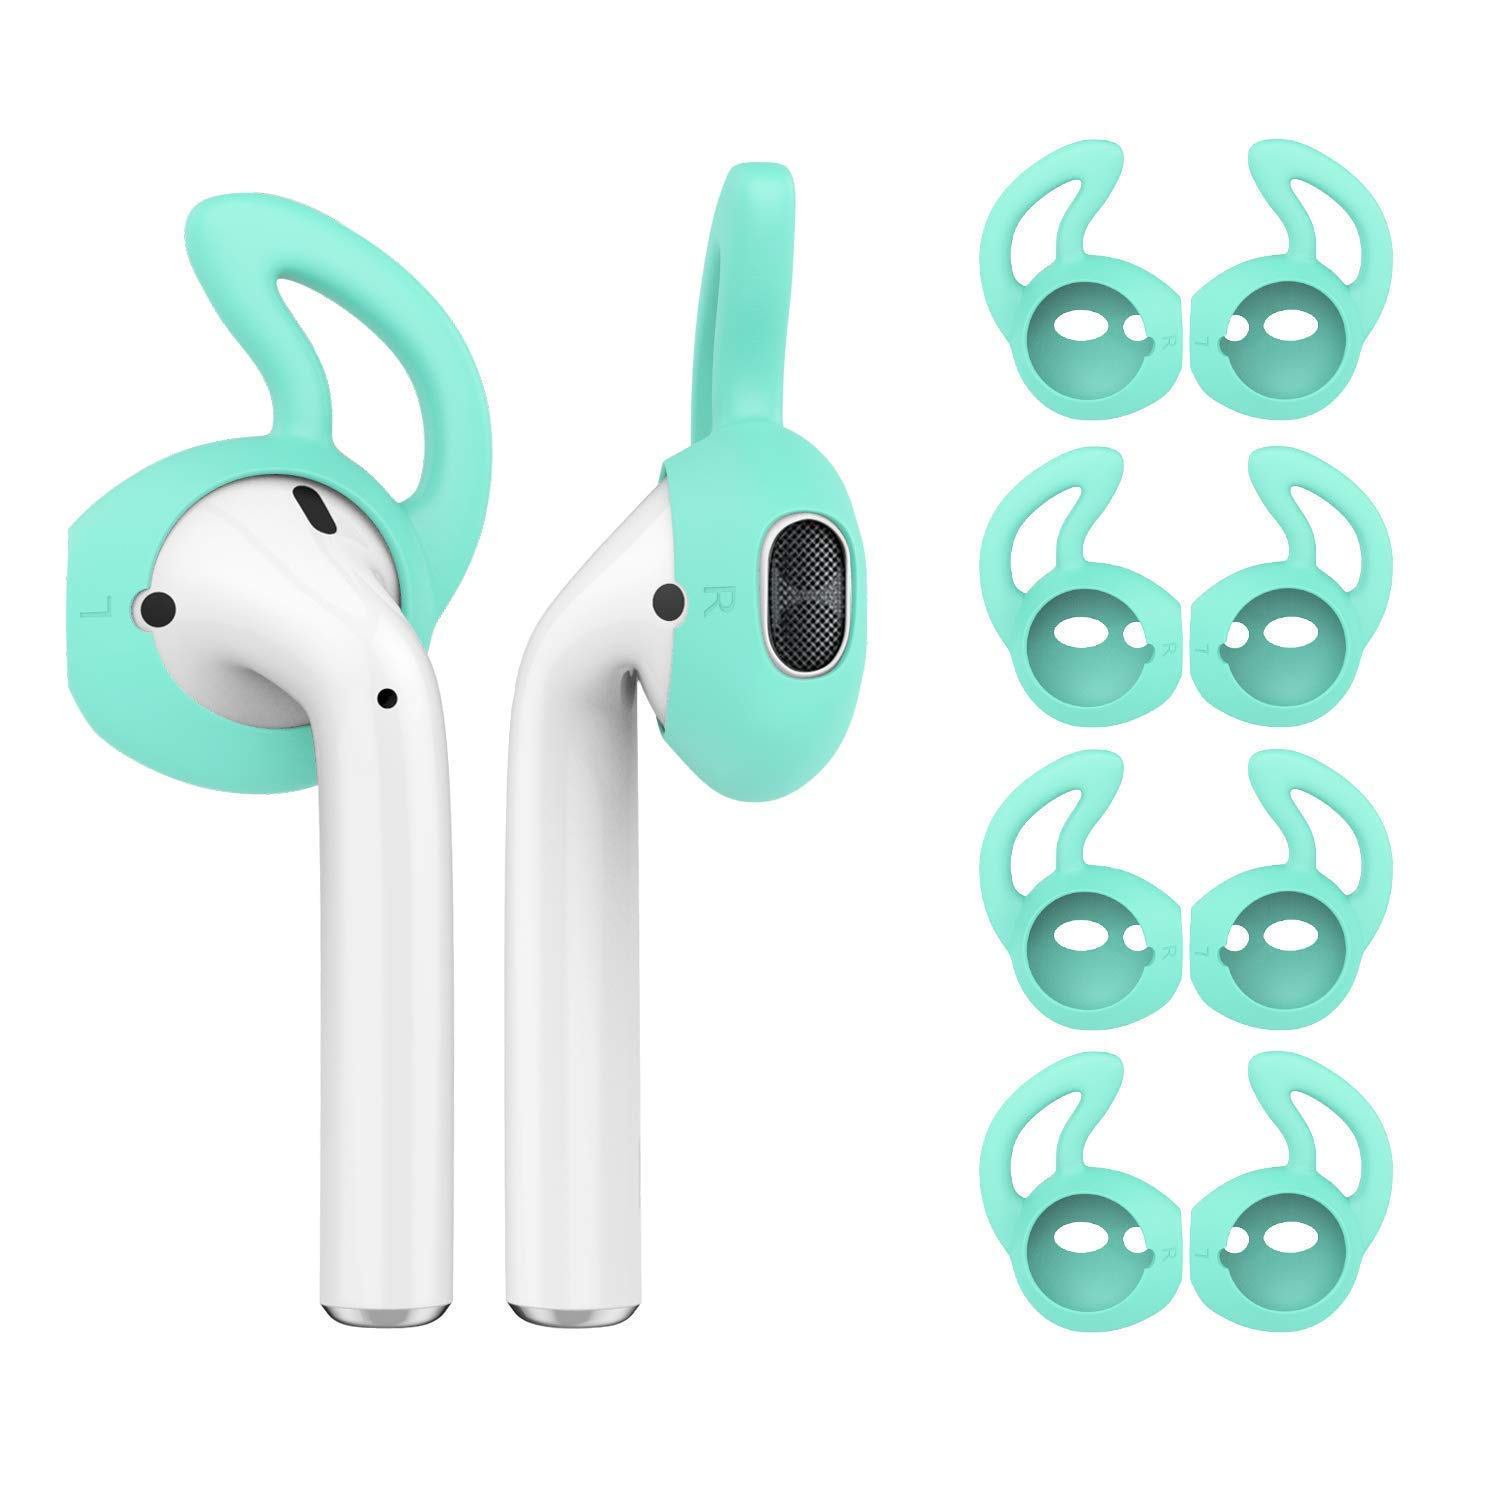 Mint Green OneCut 5 Pairs Airpods Silicone Ear Hooks Cover Earbuds Tips for Apple AirPods,Silicone Soft Anti-Slip Sport Anti-Drop Ear Hook Gel Headphones Earphones Protective Accessories Tips